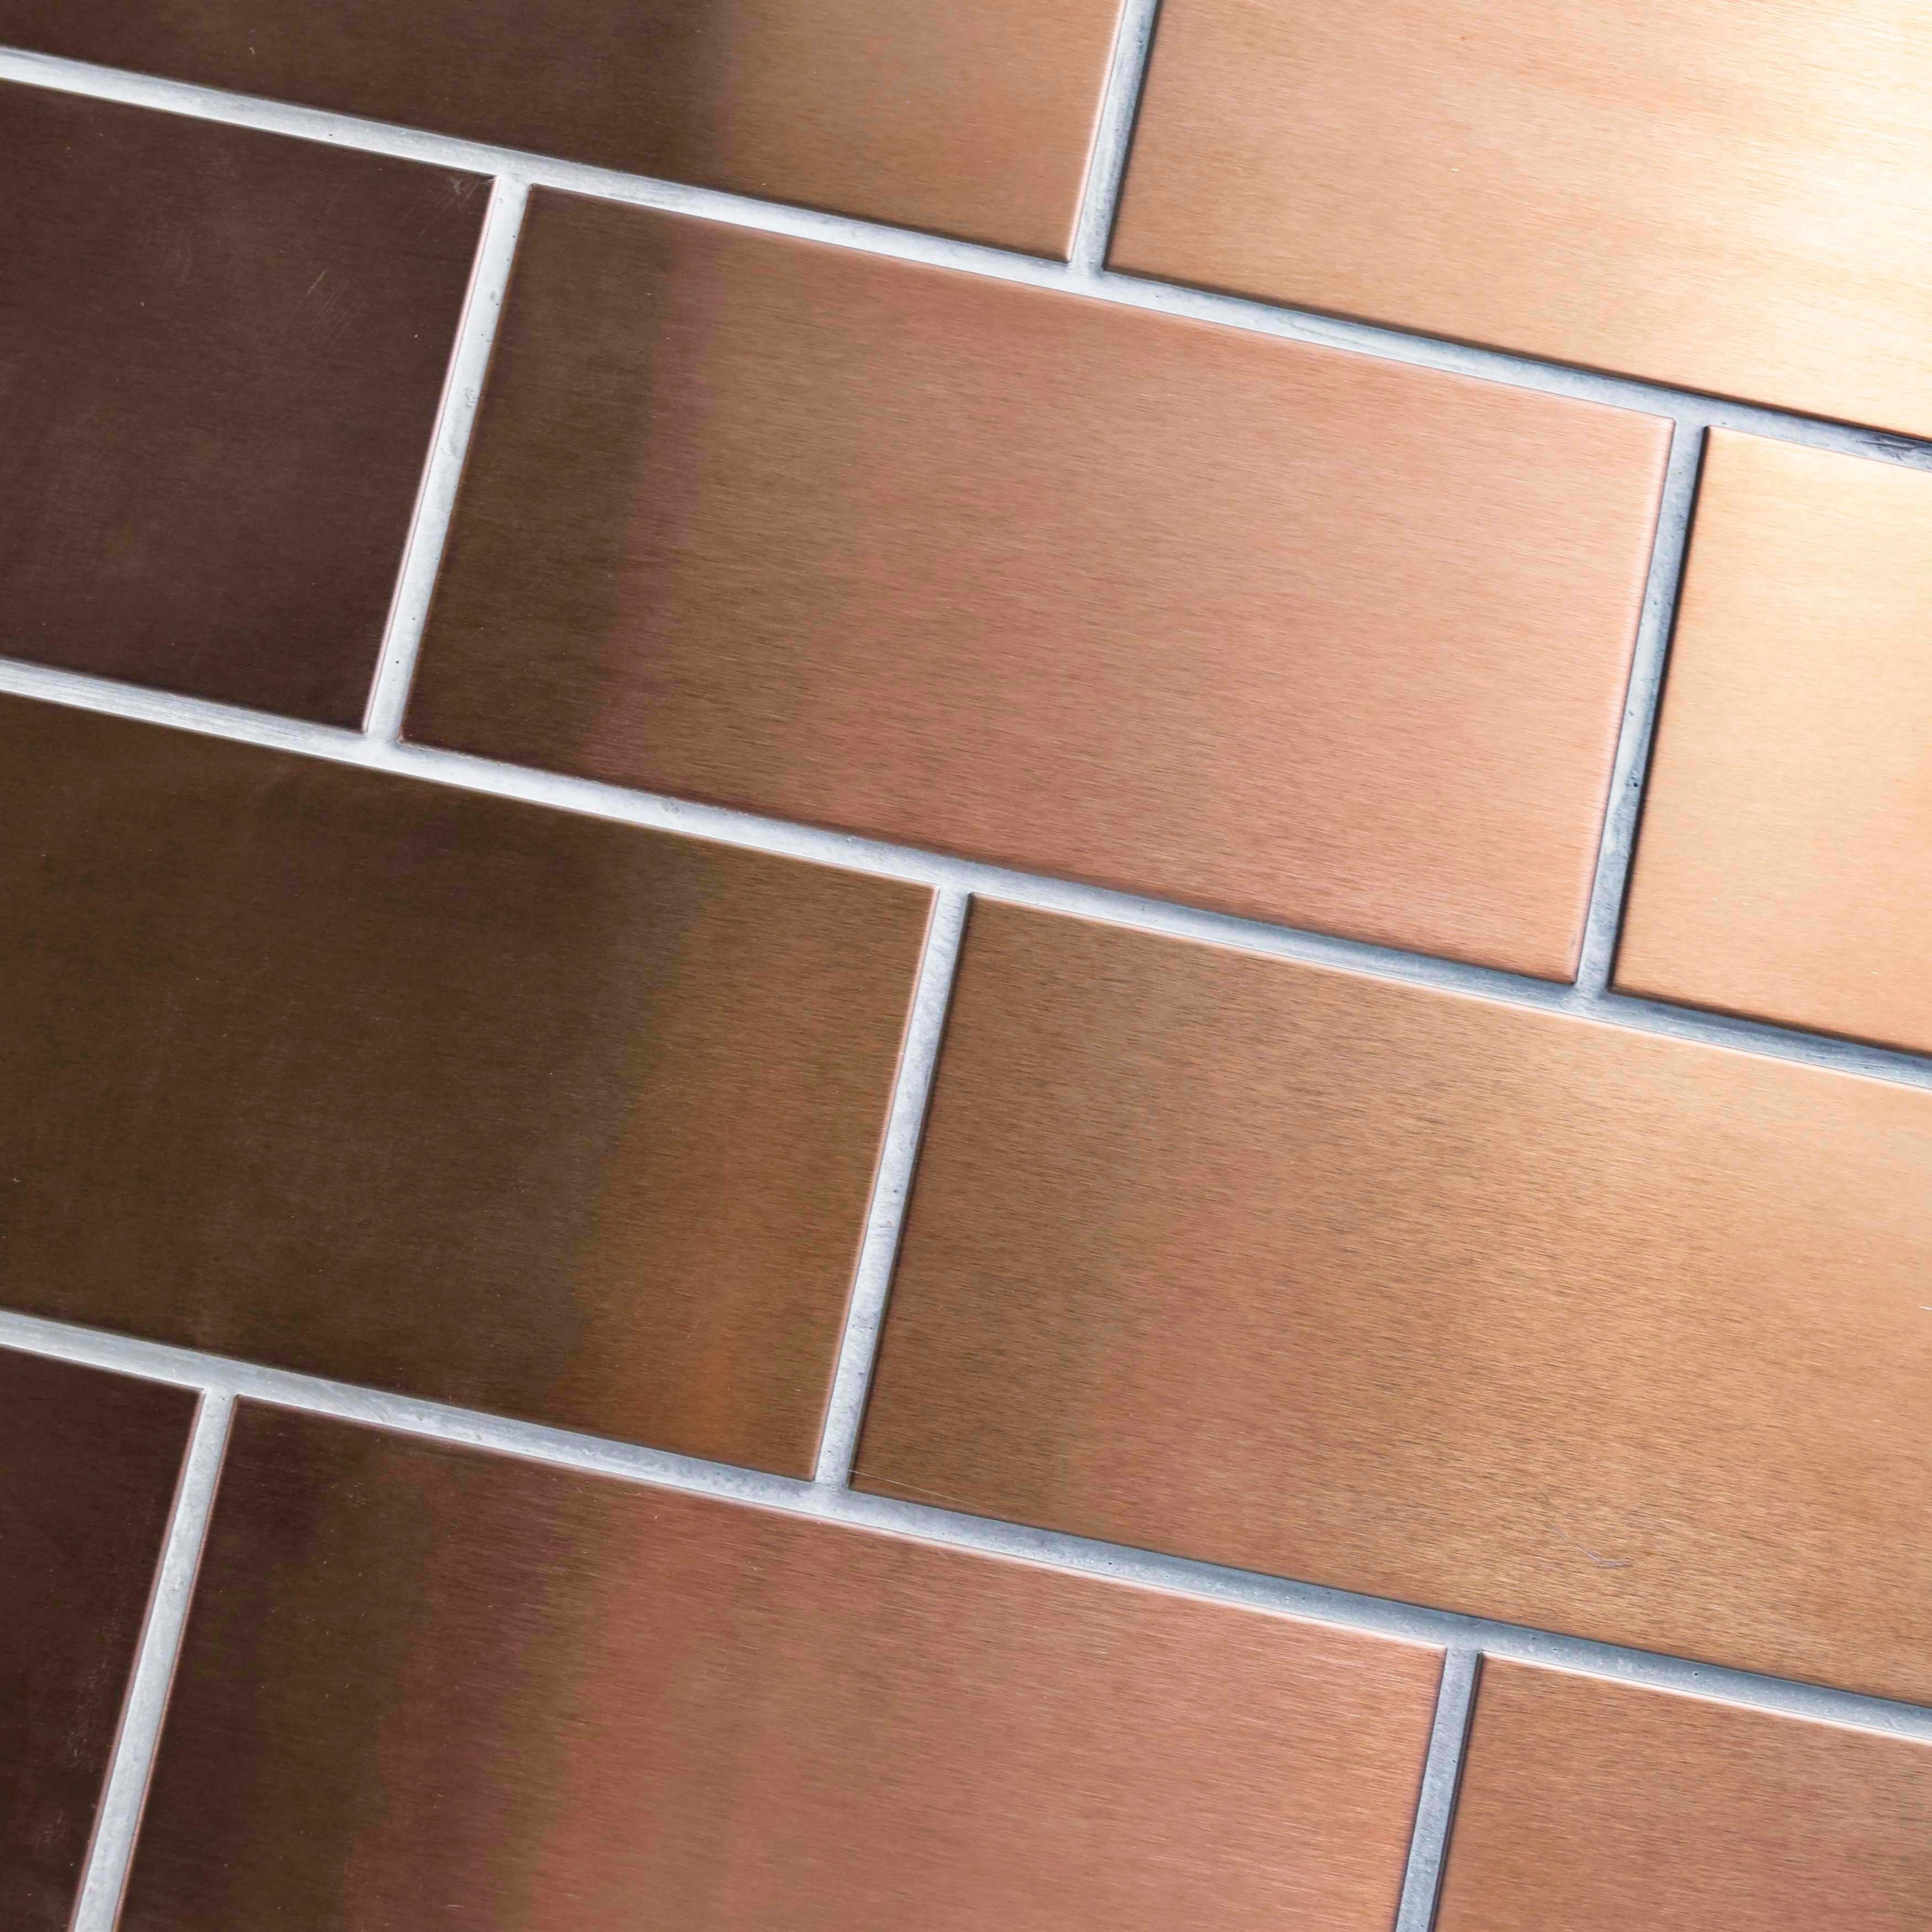 Somertile 3x6 inch alloy copper stainless steel over porcelain somertile 3x6 inch alloy copper stainless steel over porcelain mosaic wall tile 64 tiles8 sqft free shipping today overstock 12988839 dailygadgetfo Choice Image